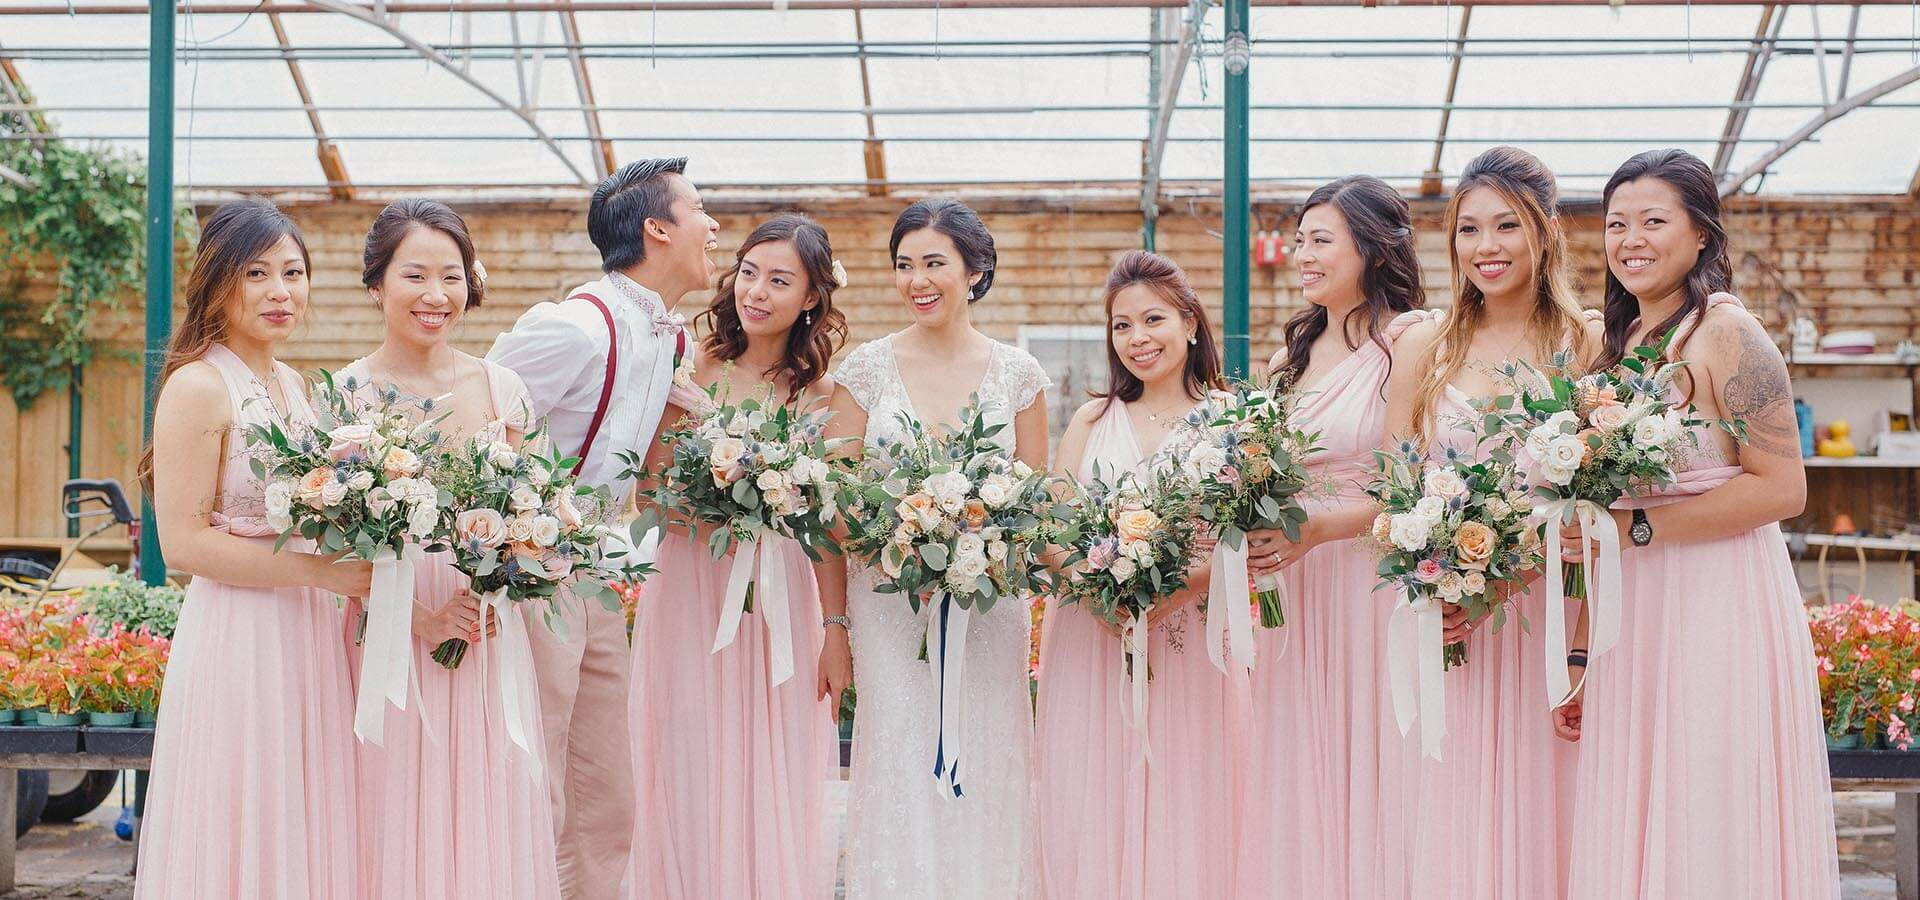 Hero image for Angela and Marvin's Magical Garden Inspired Wedding at The Madison Greenhouse